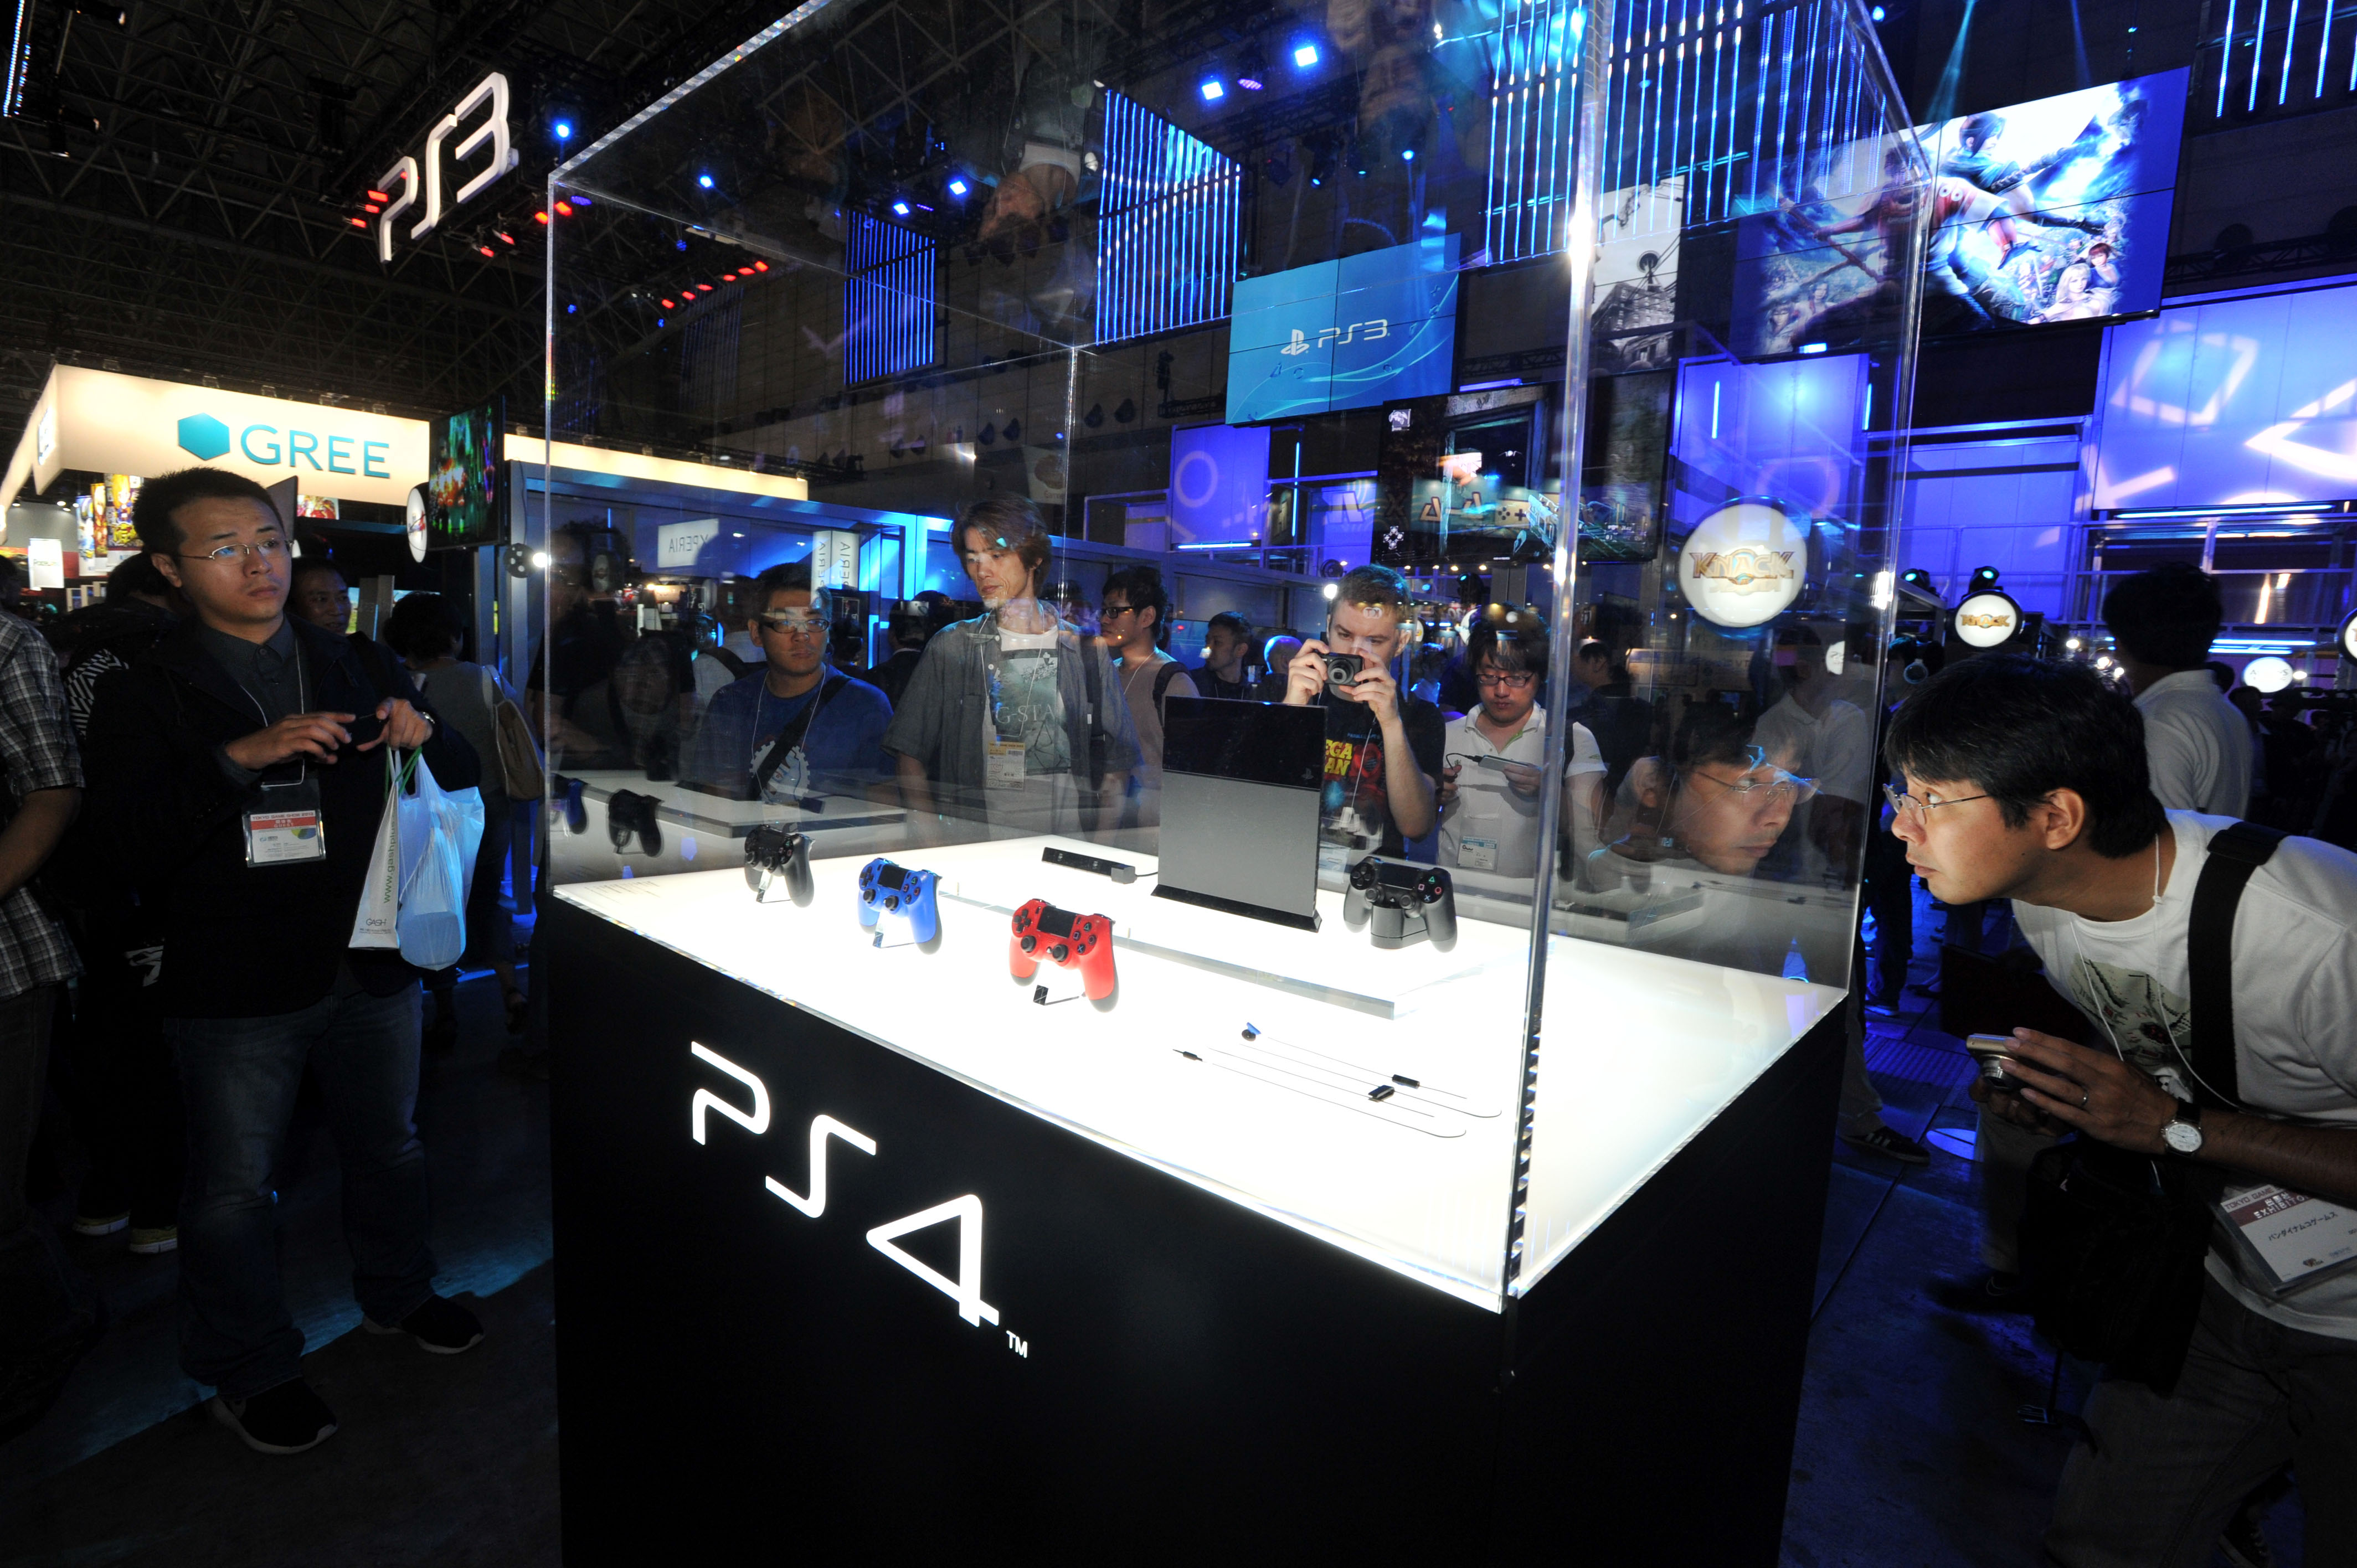 First look: People gather around a model of Sony's new PlayStation 4 console at Tokyo Game Show in Chiba on Thursday. | YOSHIAKI MIURA